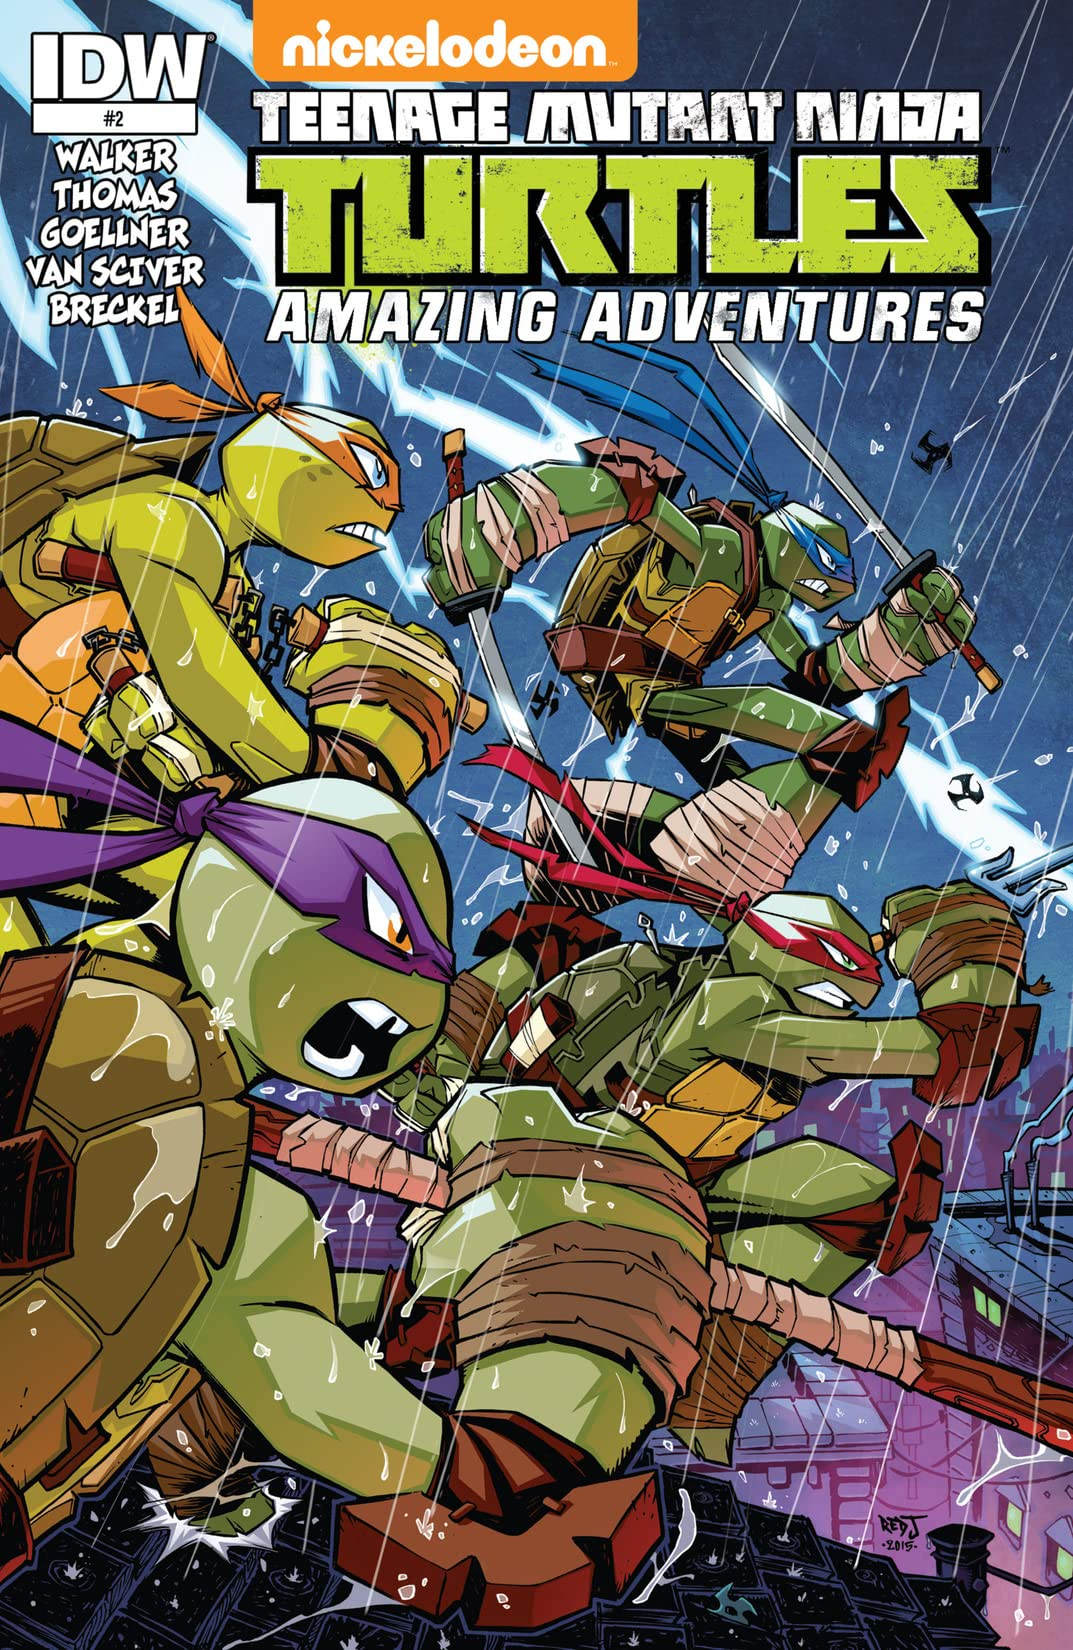 Teenage Mutant Ninja Turtles: Amazing Adventures #2